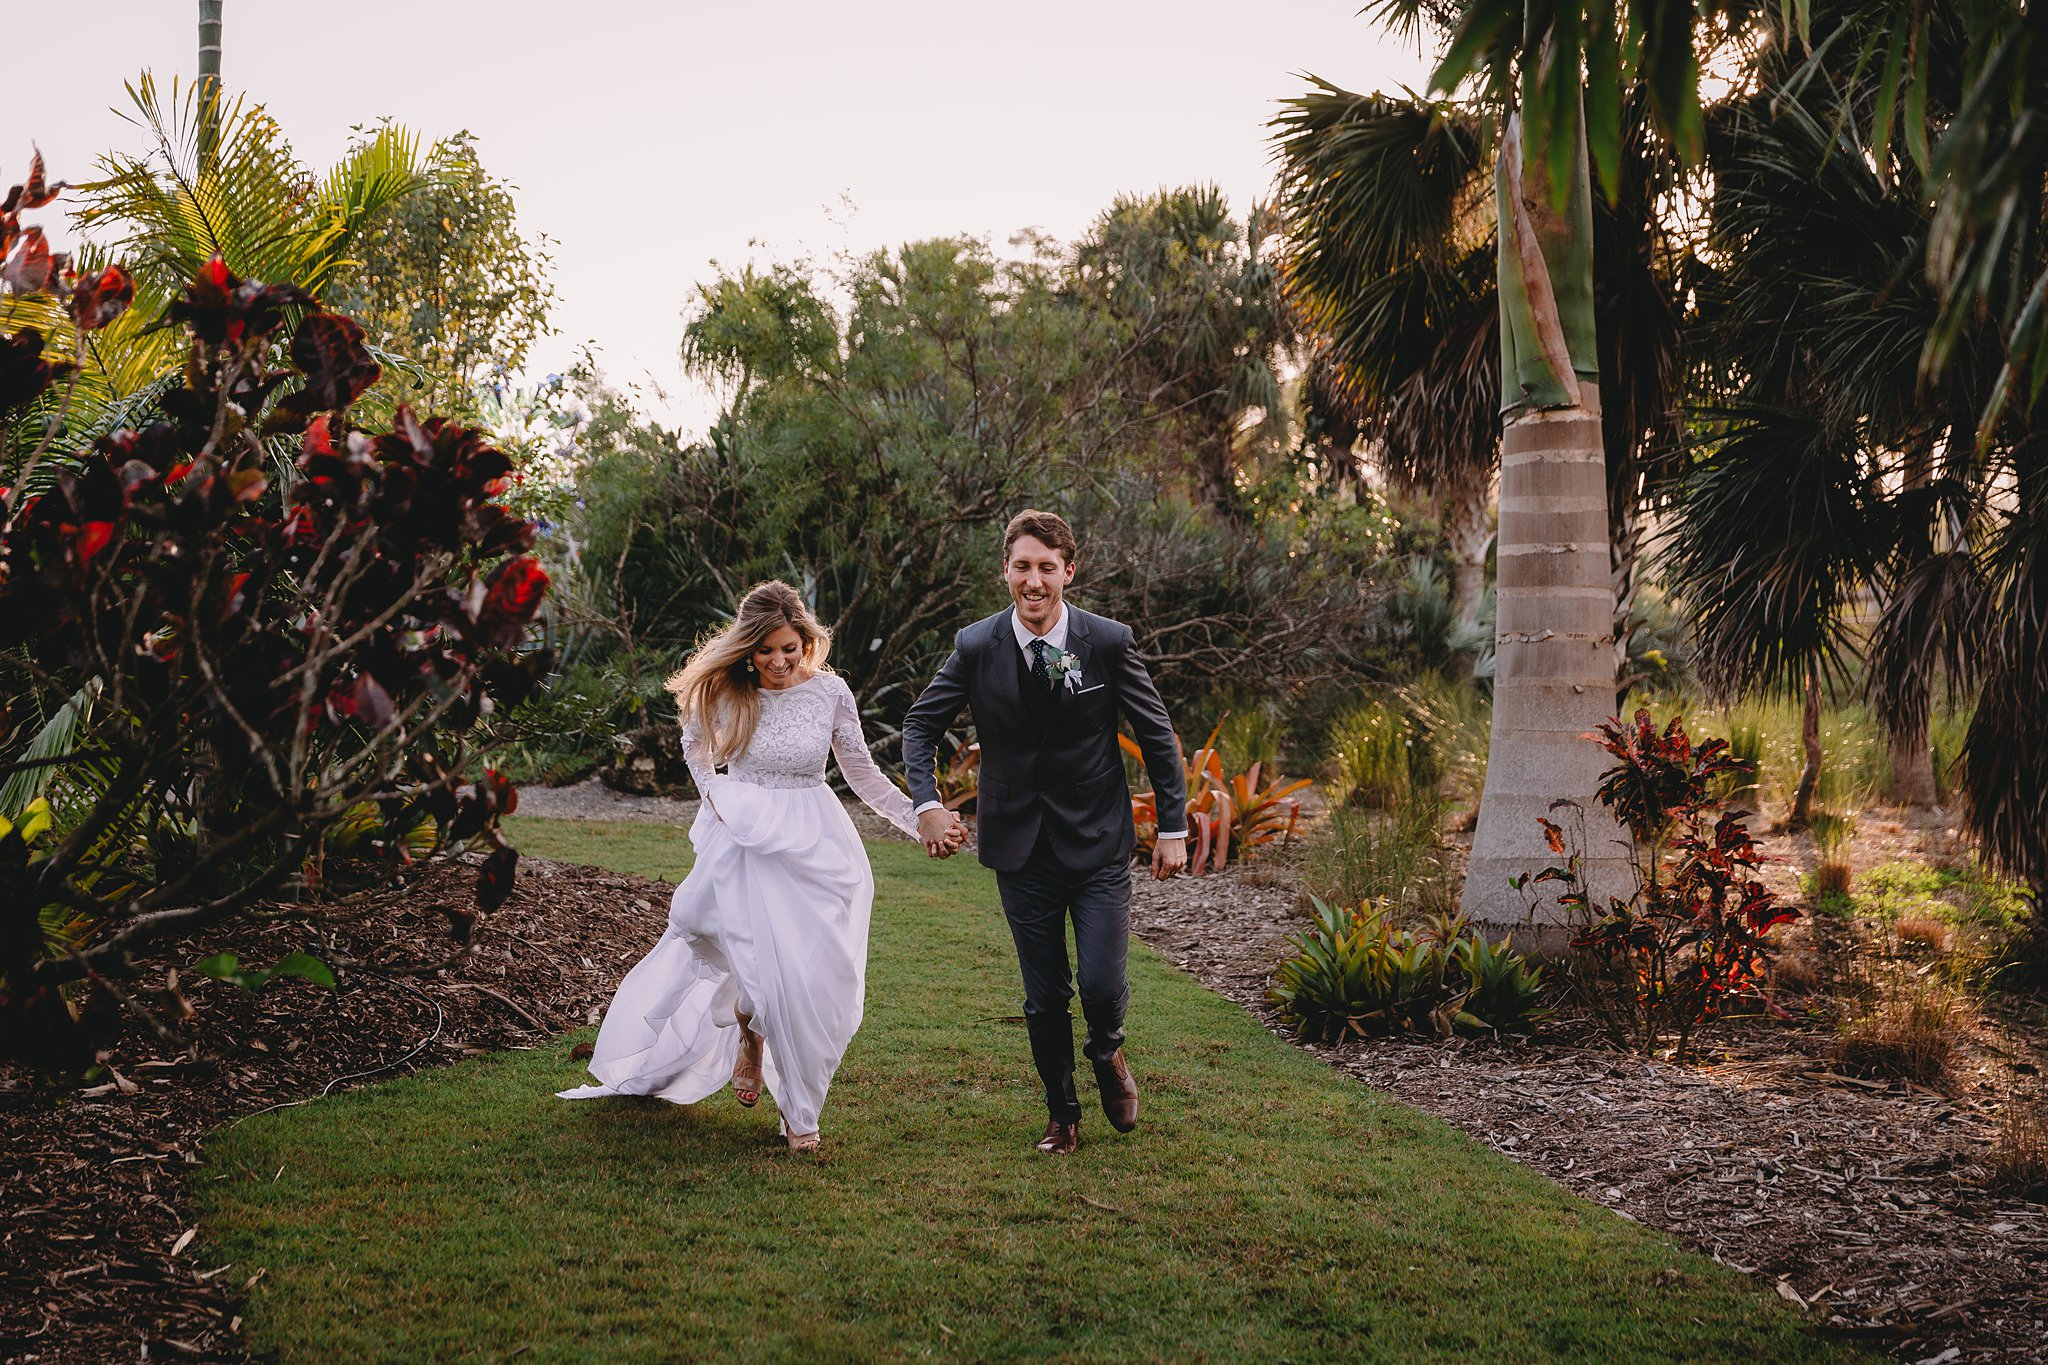 bride and groom running through garden